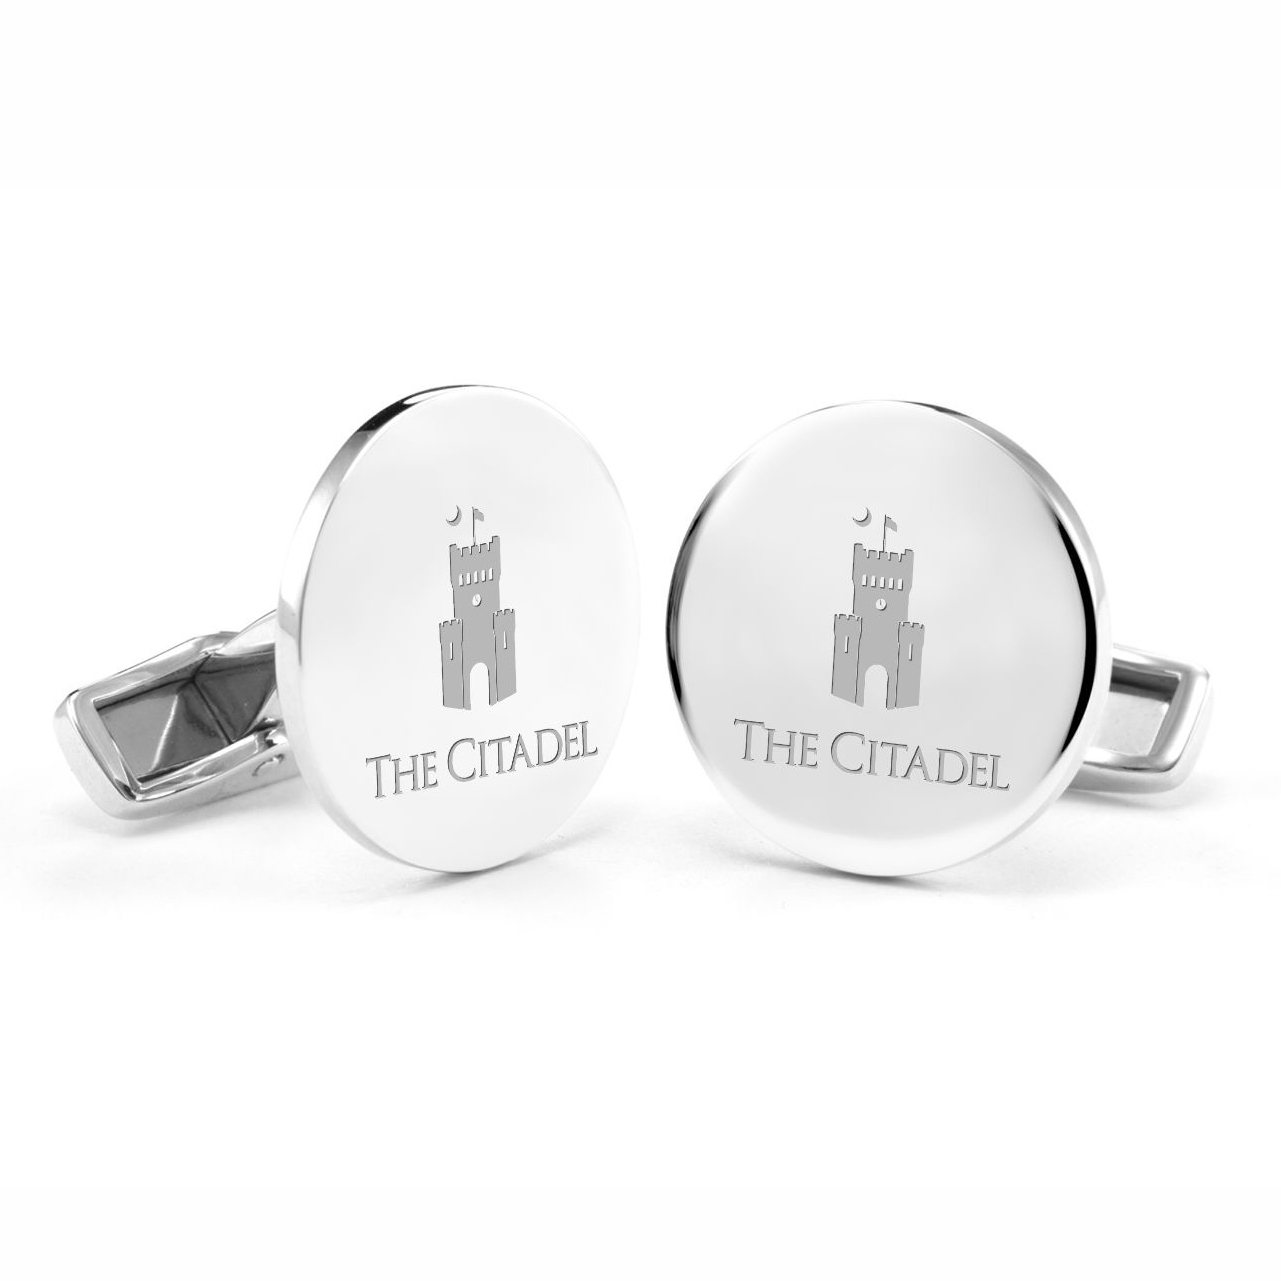 Citadel Cufflinks in Sterling Silver - Image 1